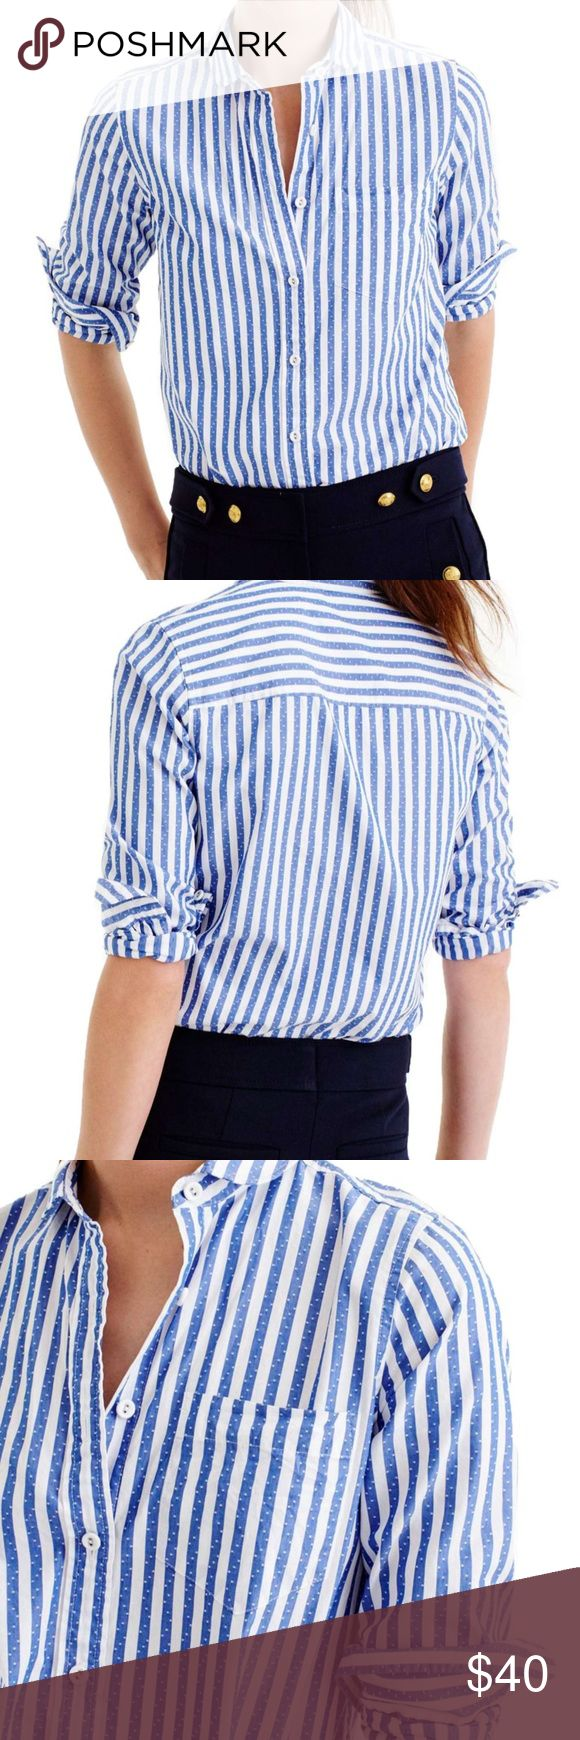 J Crew Striped Club collar Shirt! NWT J Crew Club Collar Boy fit button down! New With tags!  Jacquard stripe blue and white with dots! Size 4. 25.5 inches long. Bust 18.5 measuring across the front! J. Crew Tops Button Down Shirts